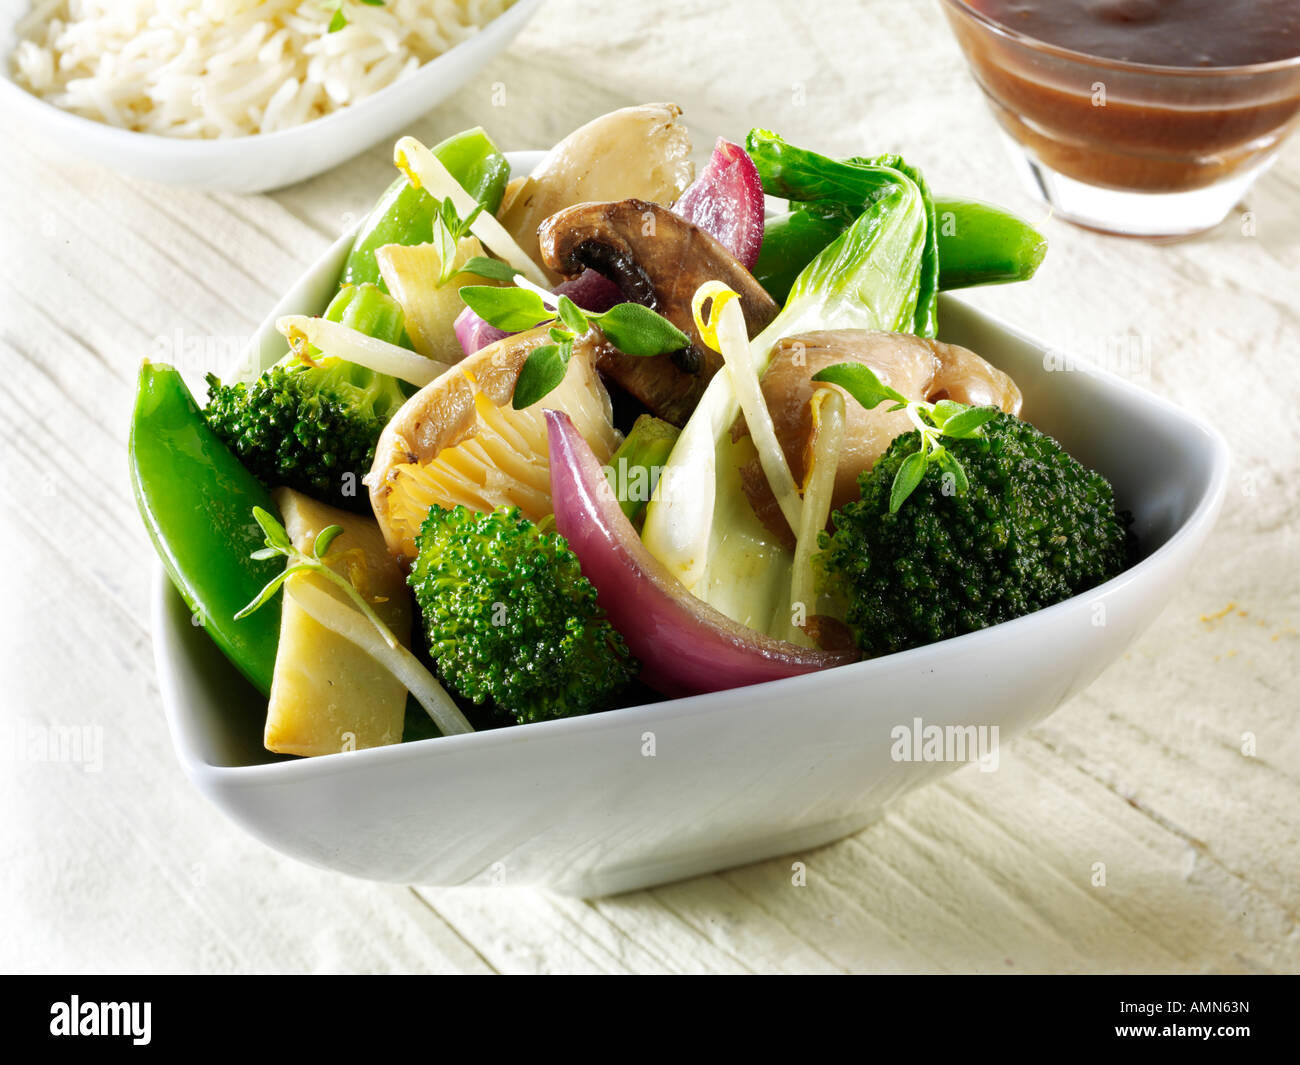 Oriental vegetarian stir fry of vegetables with mushrooms and noodles - Stock Image